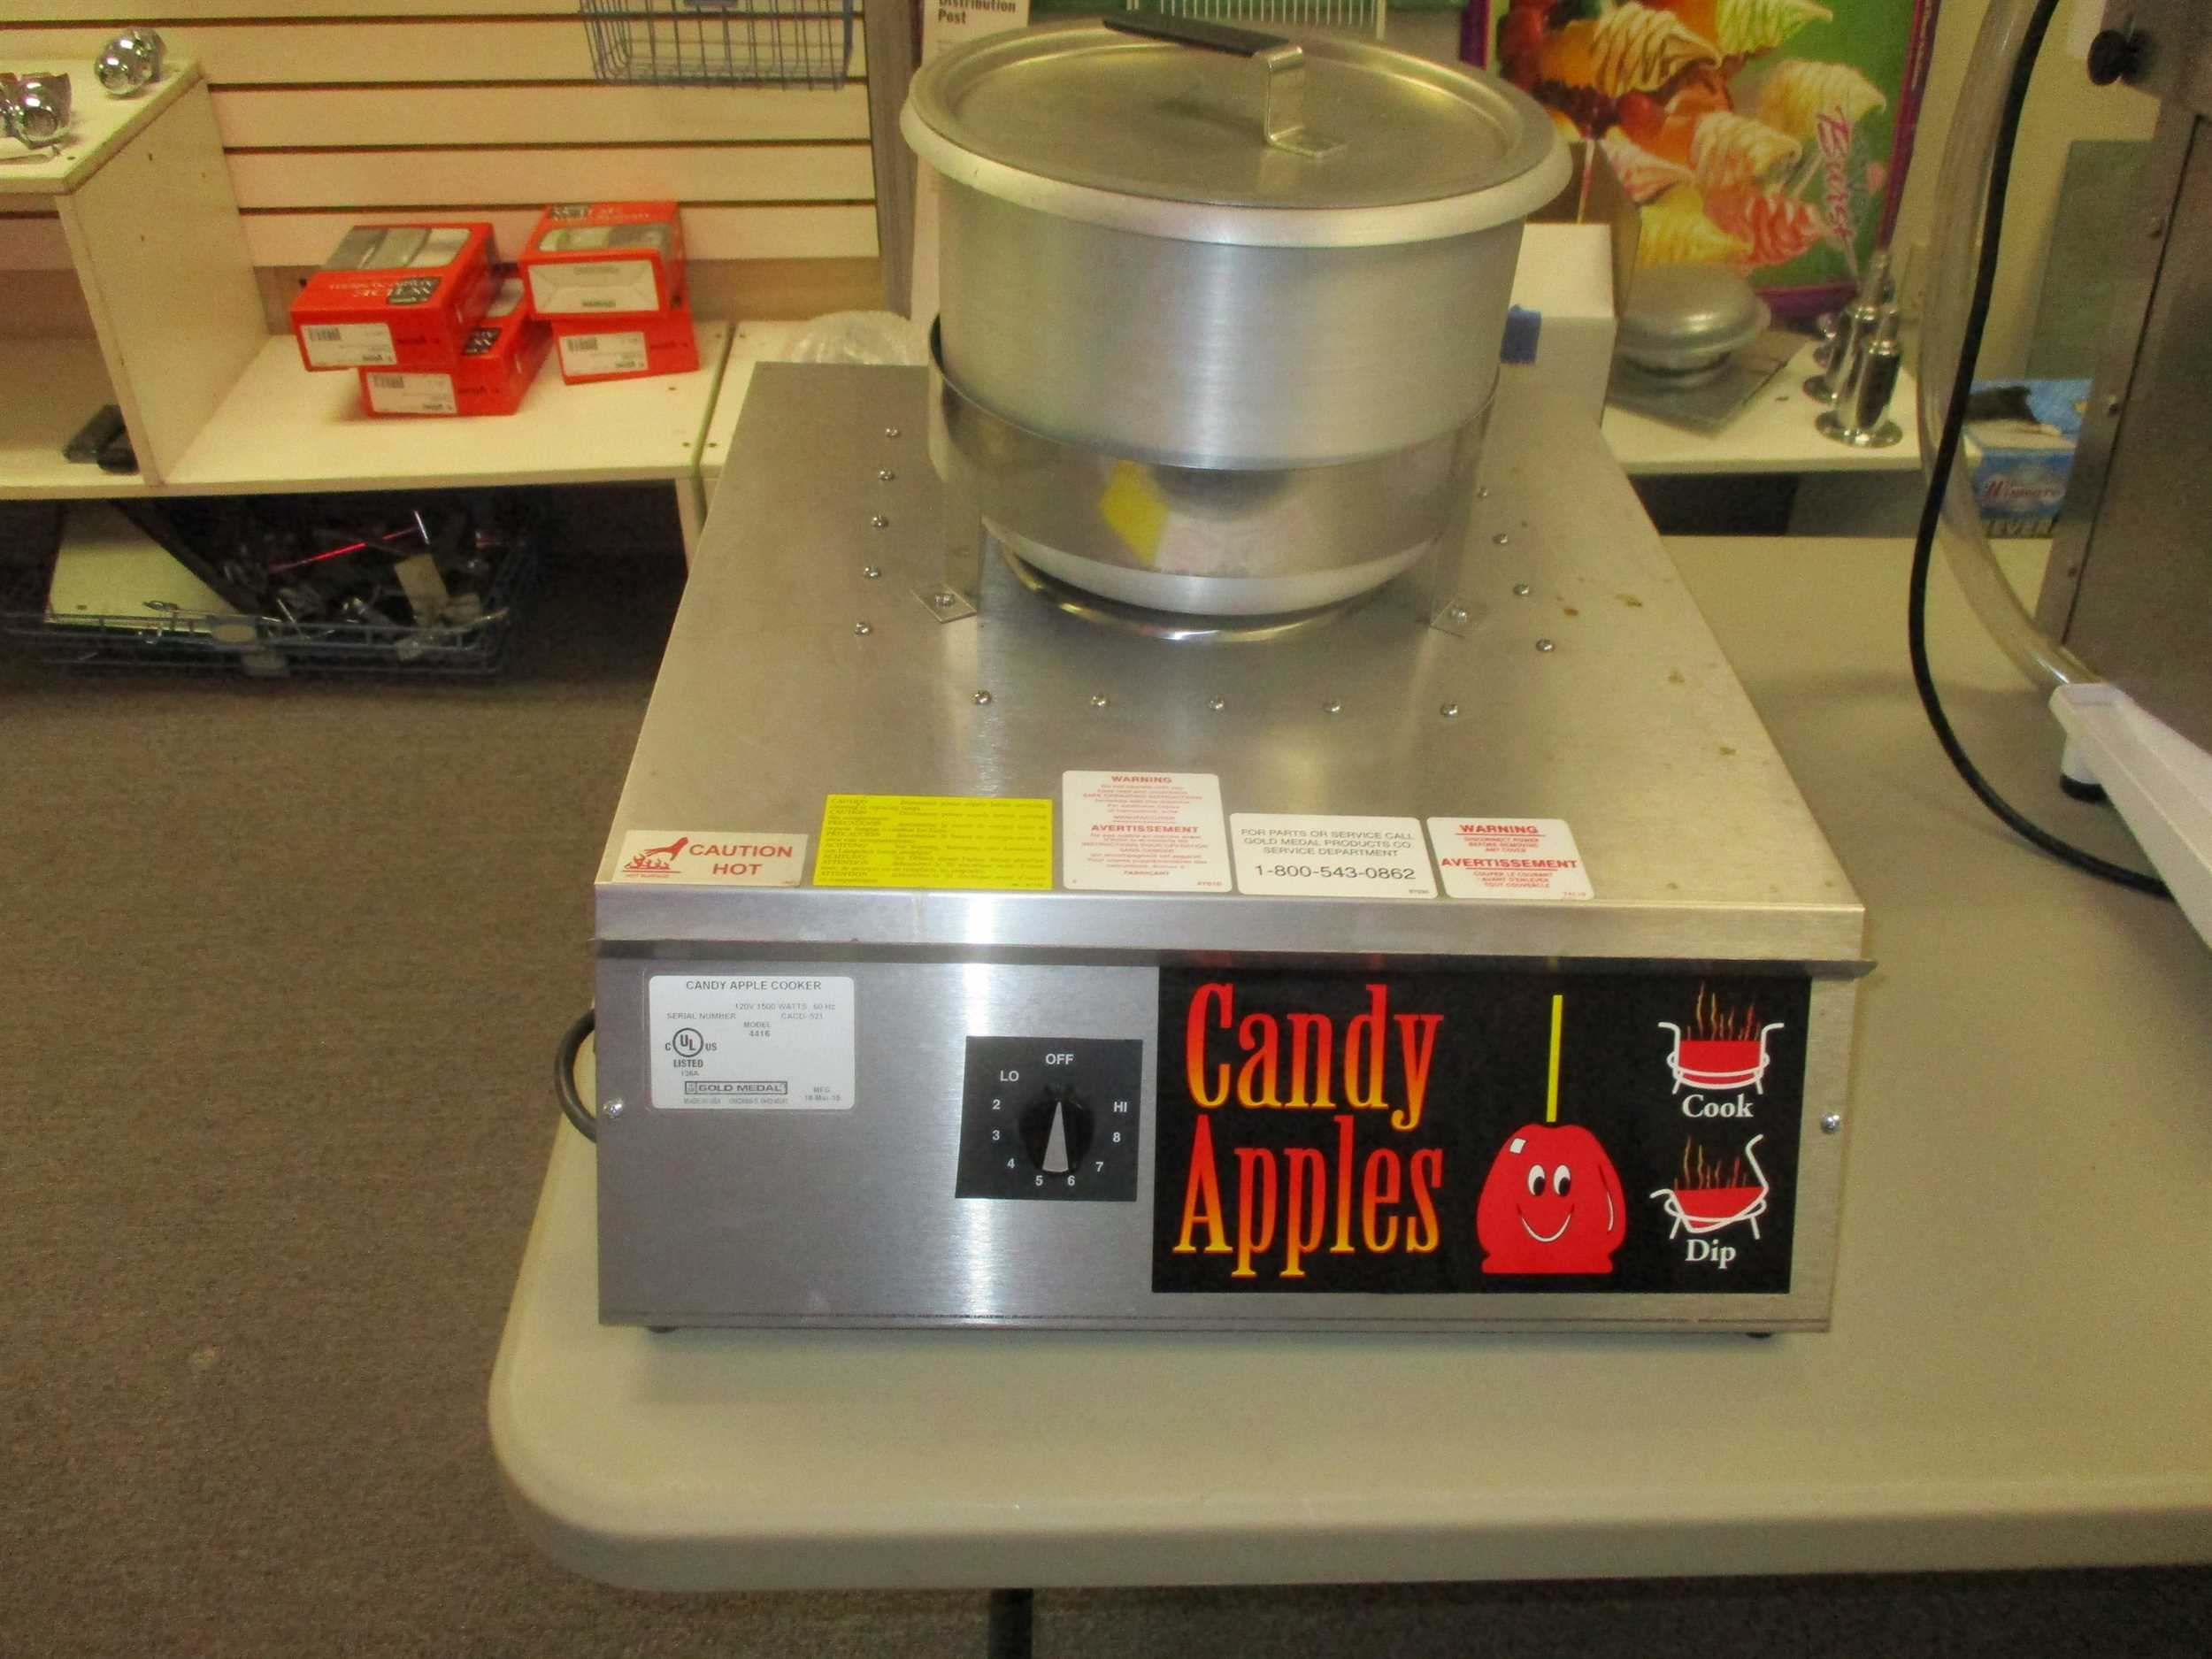 #4416 Hot Shot Elec. Candied Apple Stove